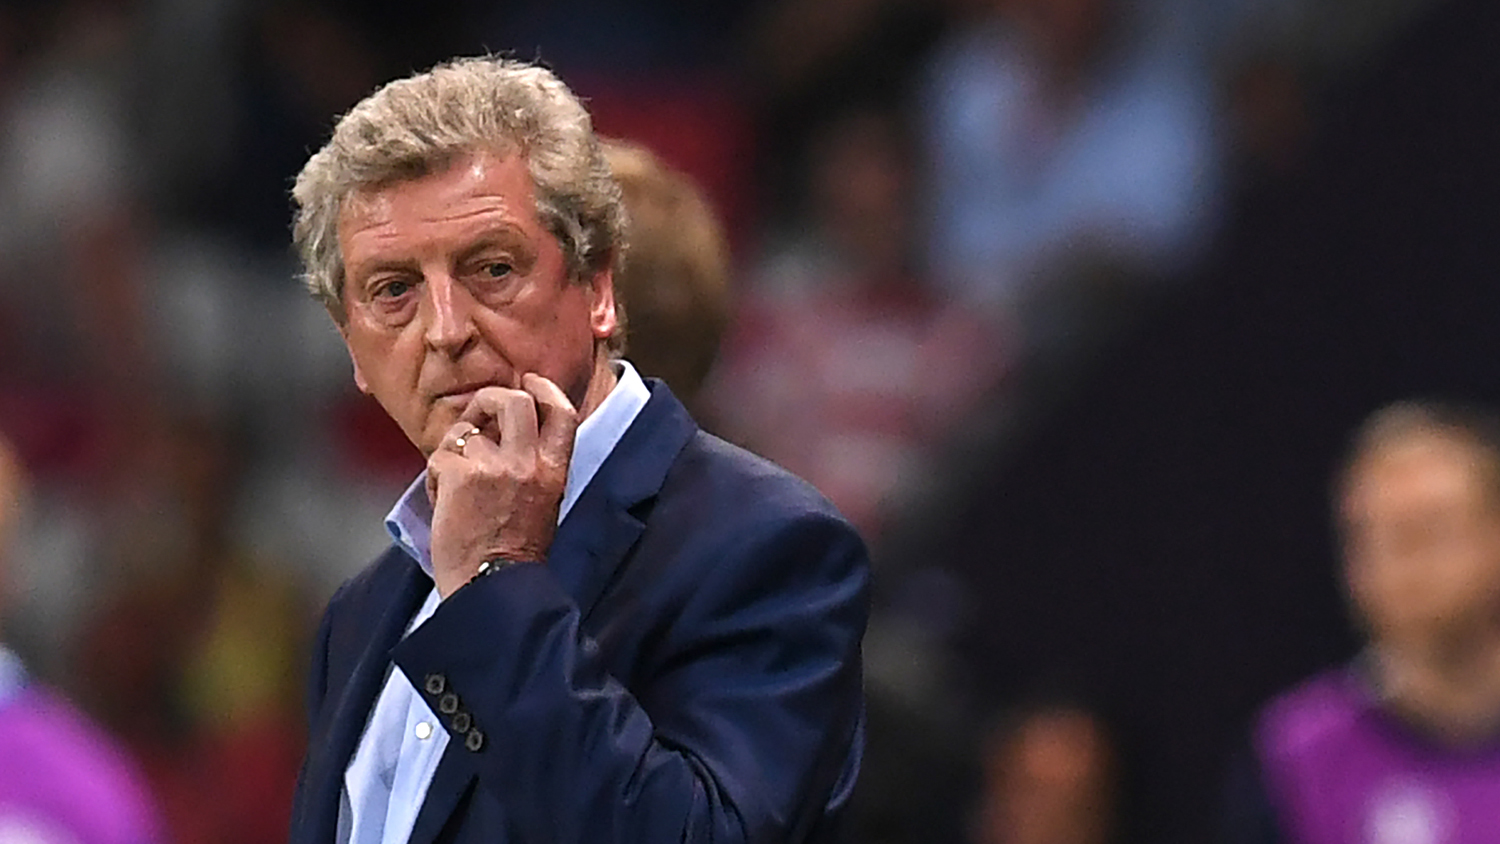 Roy Hodgson resigns as England manager after loss to Iceland